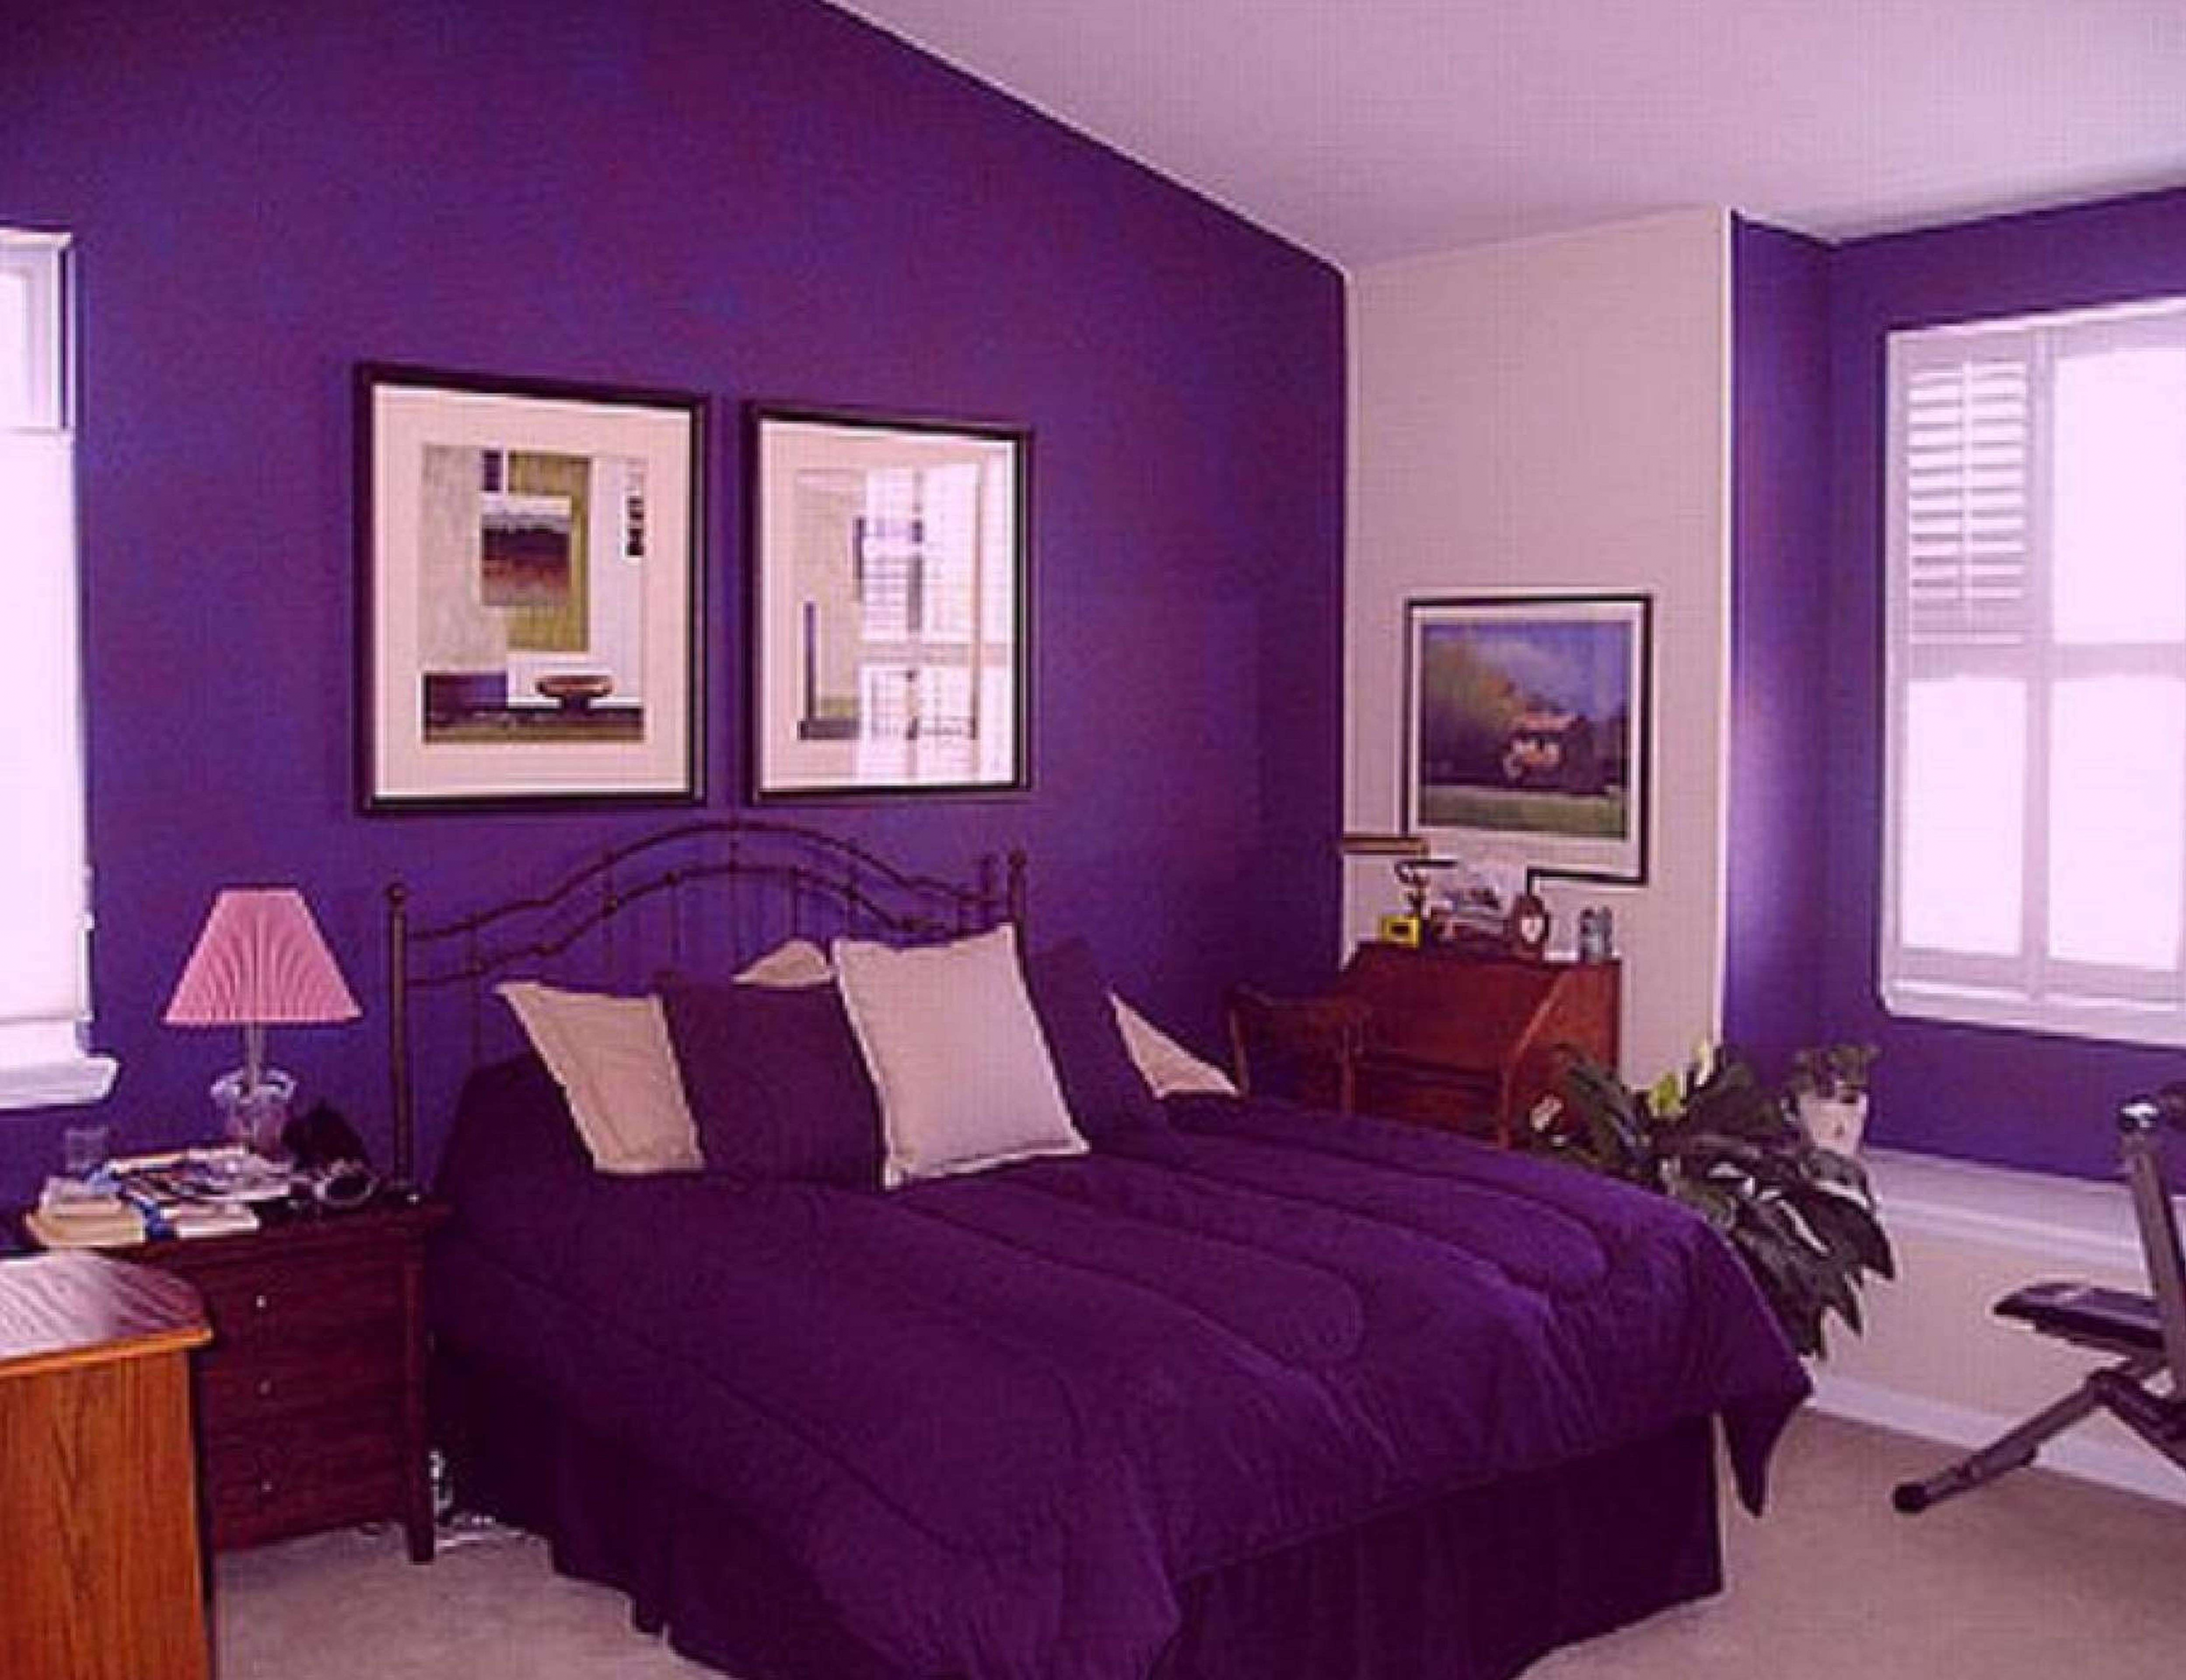 Enchanting Romantic Bedroom Colors Of Awesome For Your Home Inspiration Ideas Lovely Acnn Decor